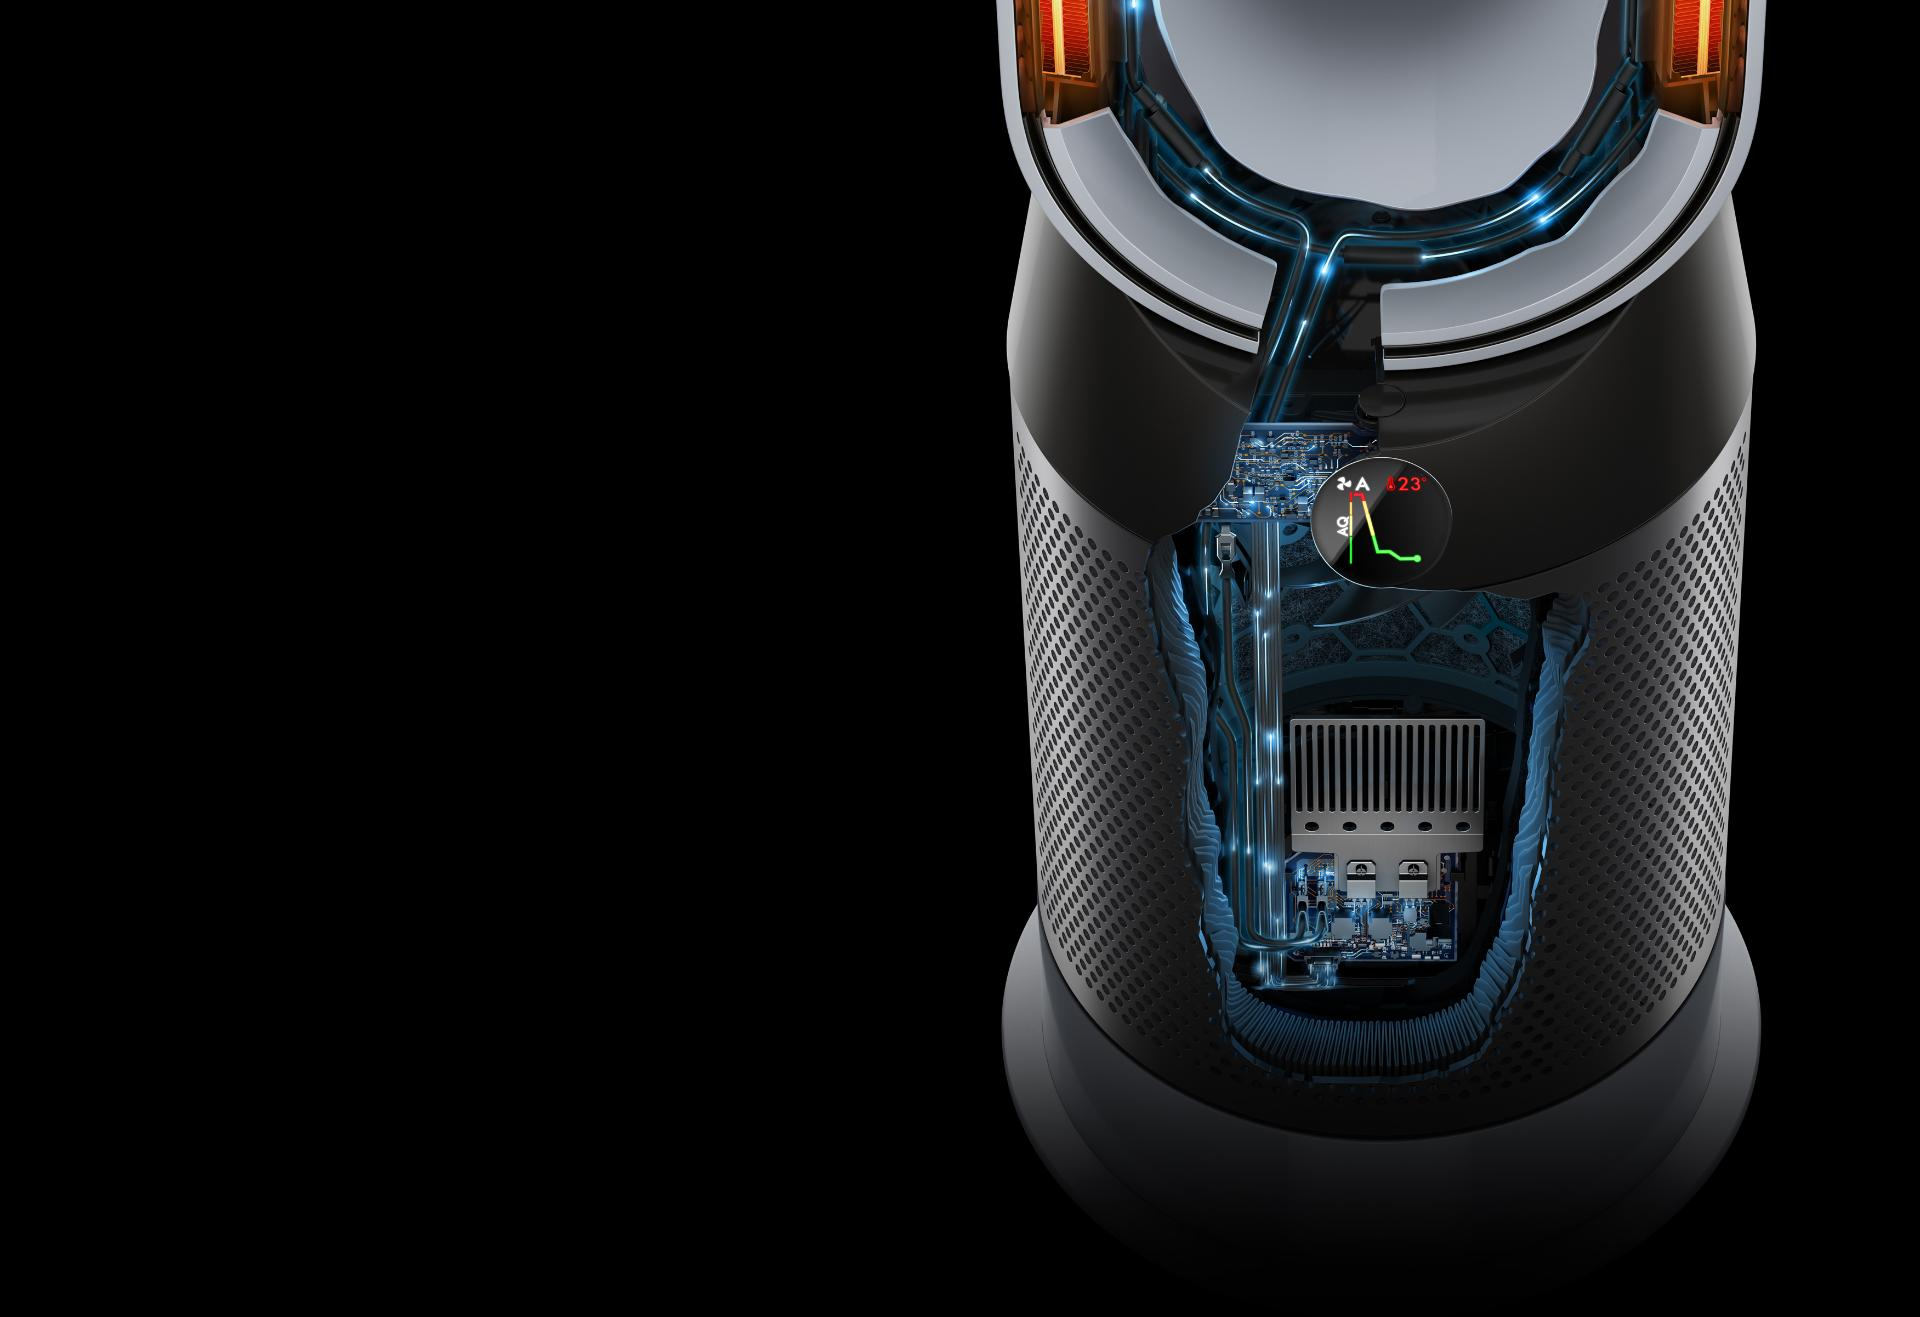 Inner workings of the Dyson Pure Hot+Cool purifier